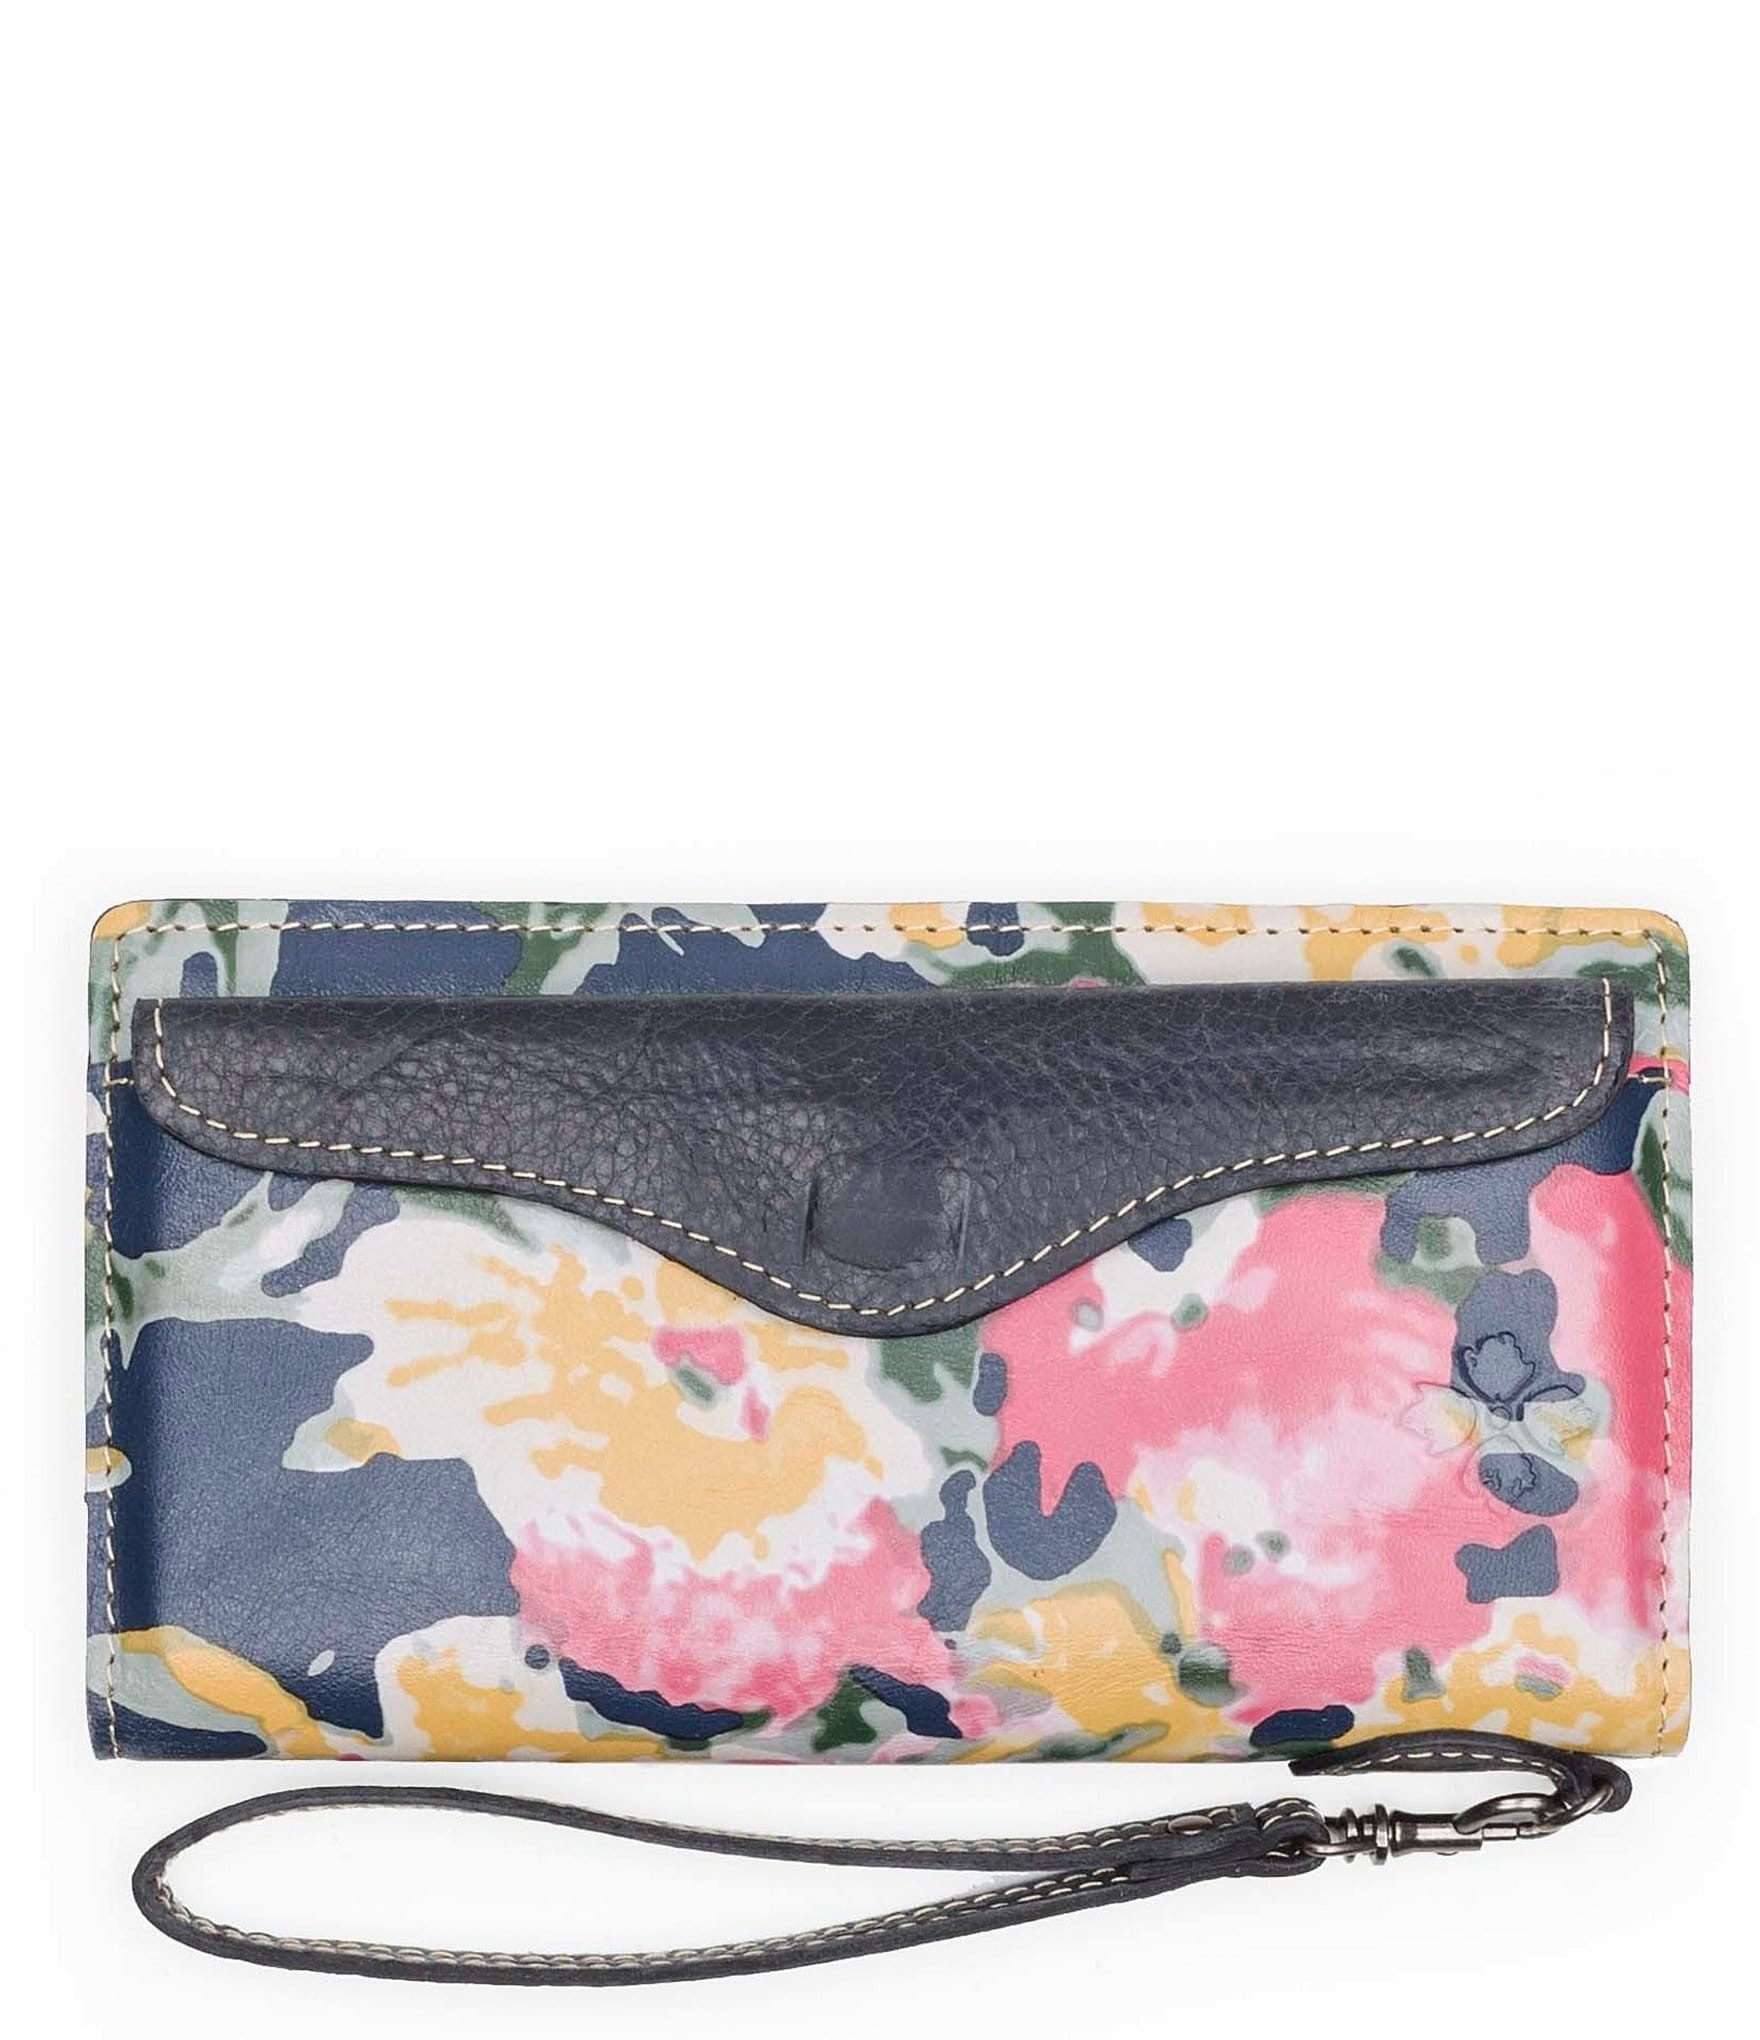 Secret Garden Zipper Pouch Small The Colour Society Best Prices For Sale Clearance Fake xeU2gOnM9I